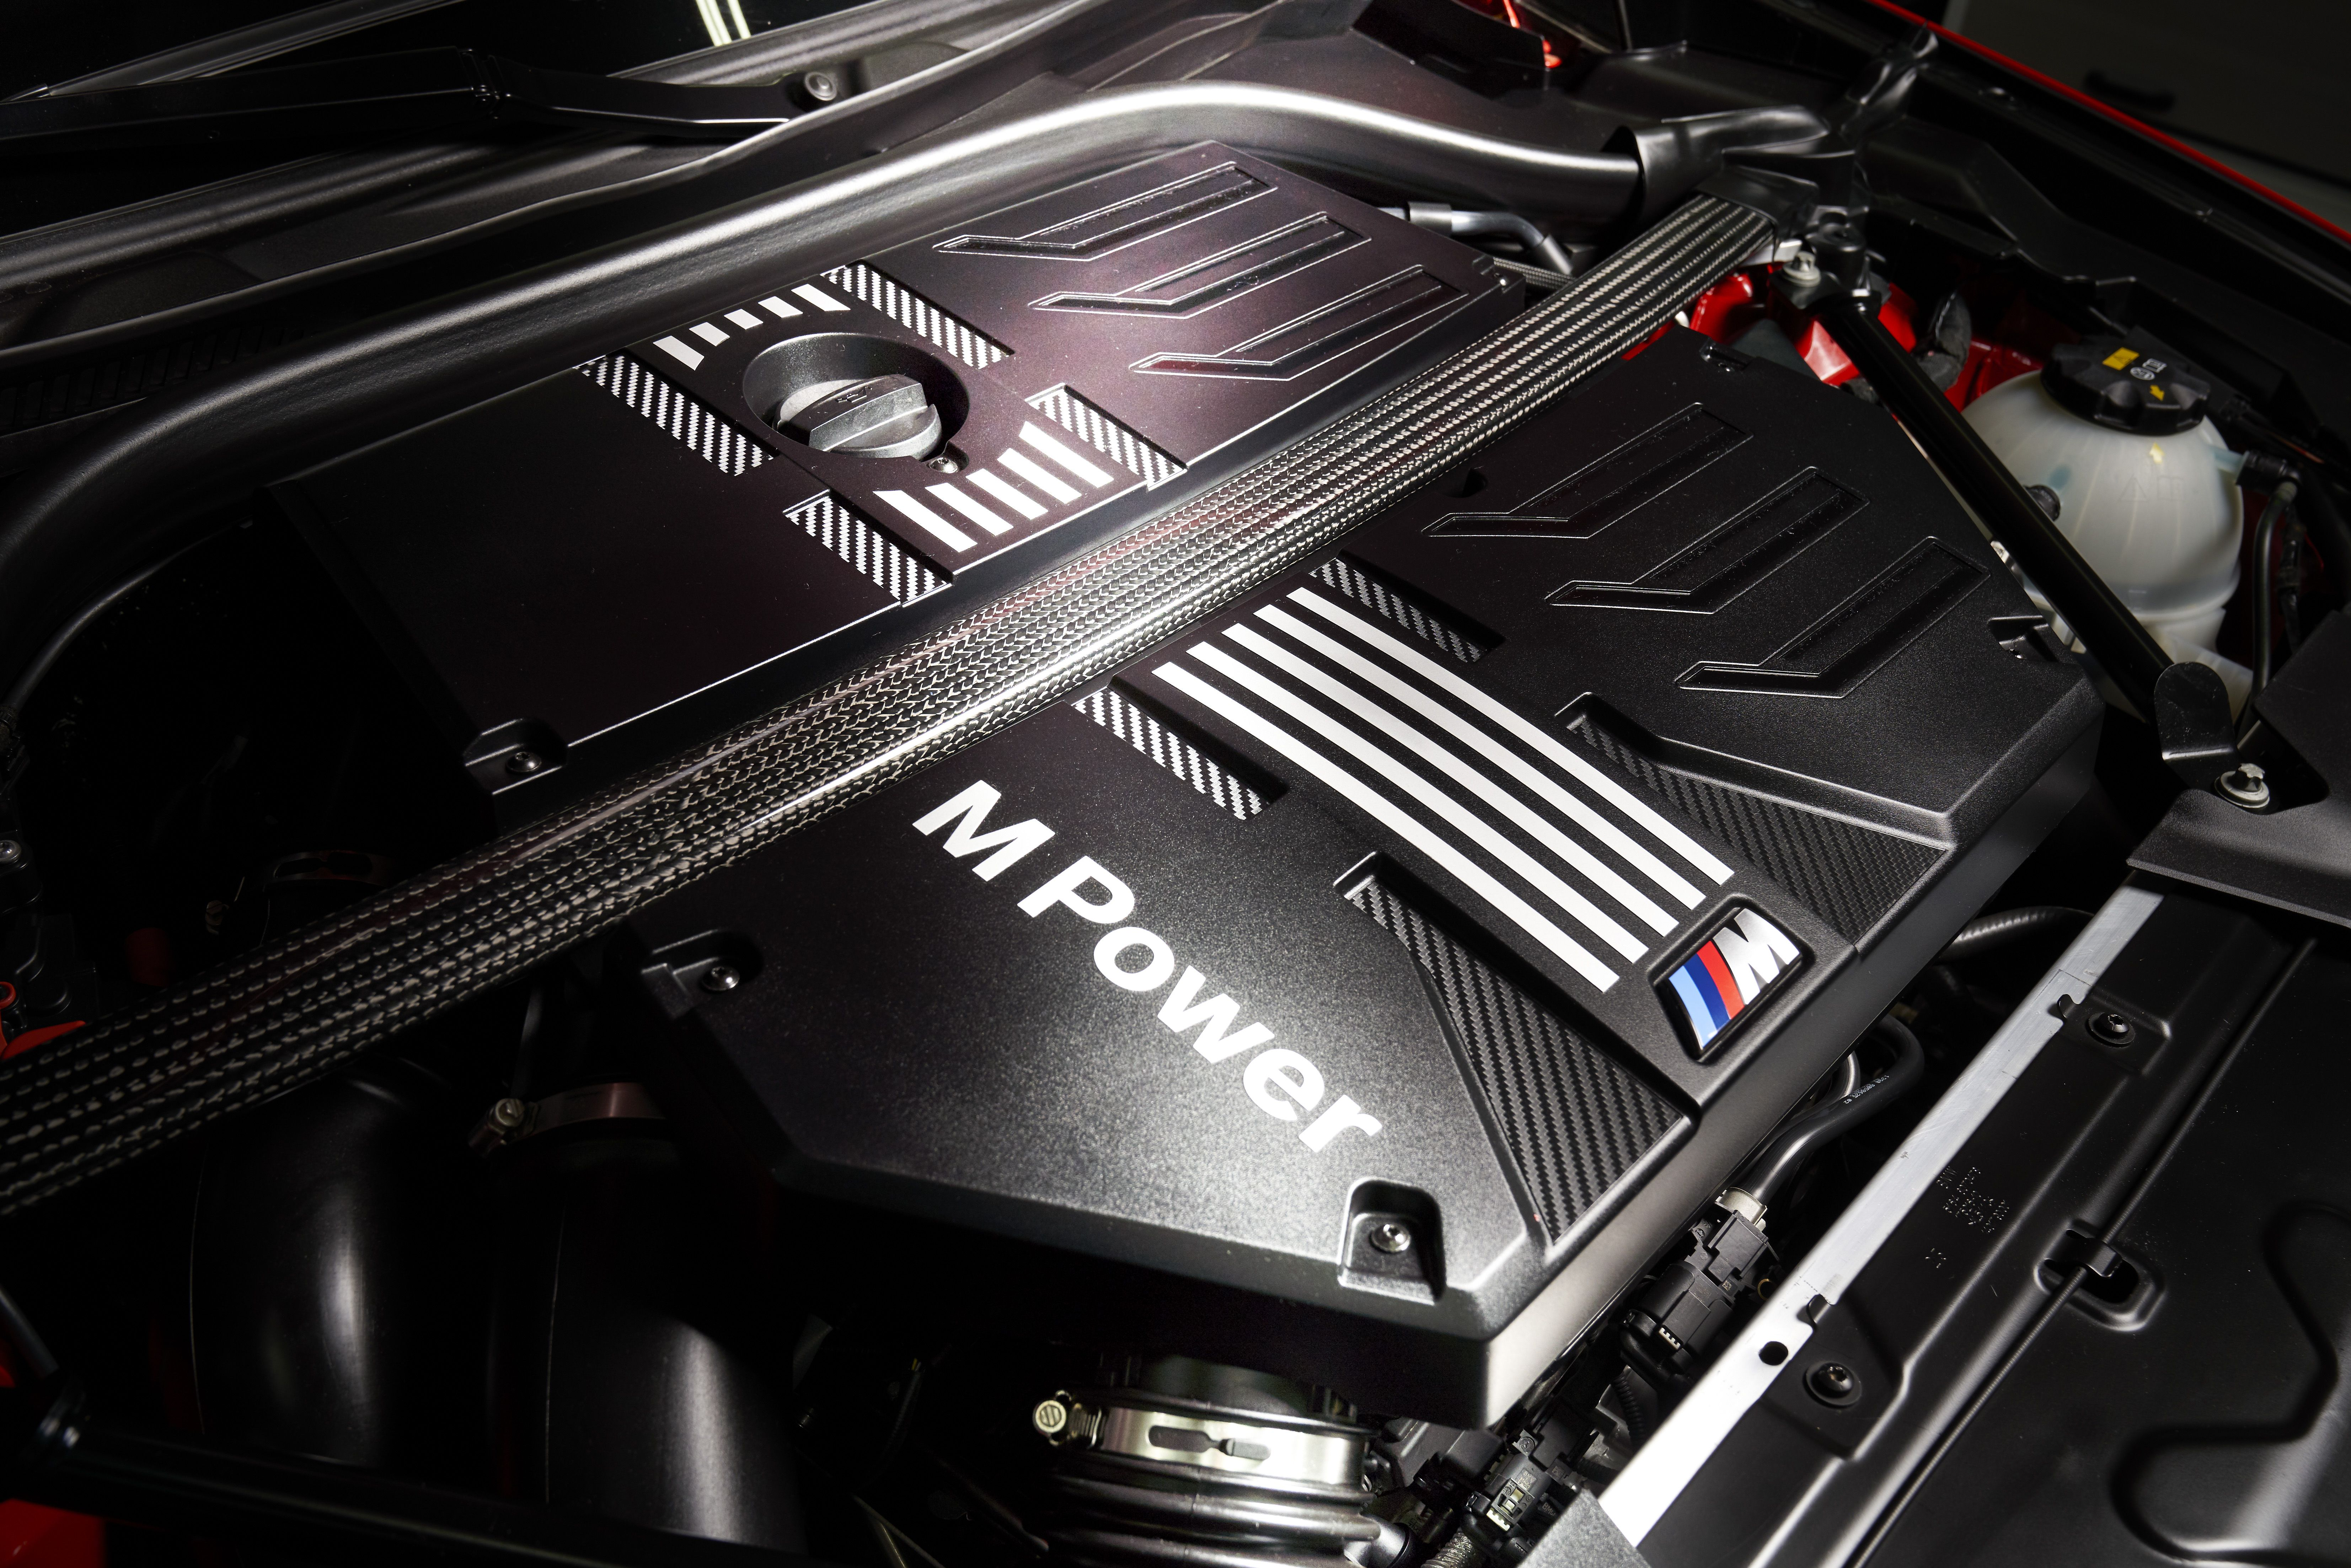 Bmw S New S58 Engine From The 2020 Bmw X3 M And X4 M Will Eventually Power The Next Gen M2 M3 And M4 Top Speed Bmw Engines Bmw M4 New Bmw